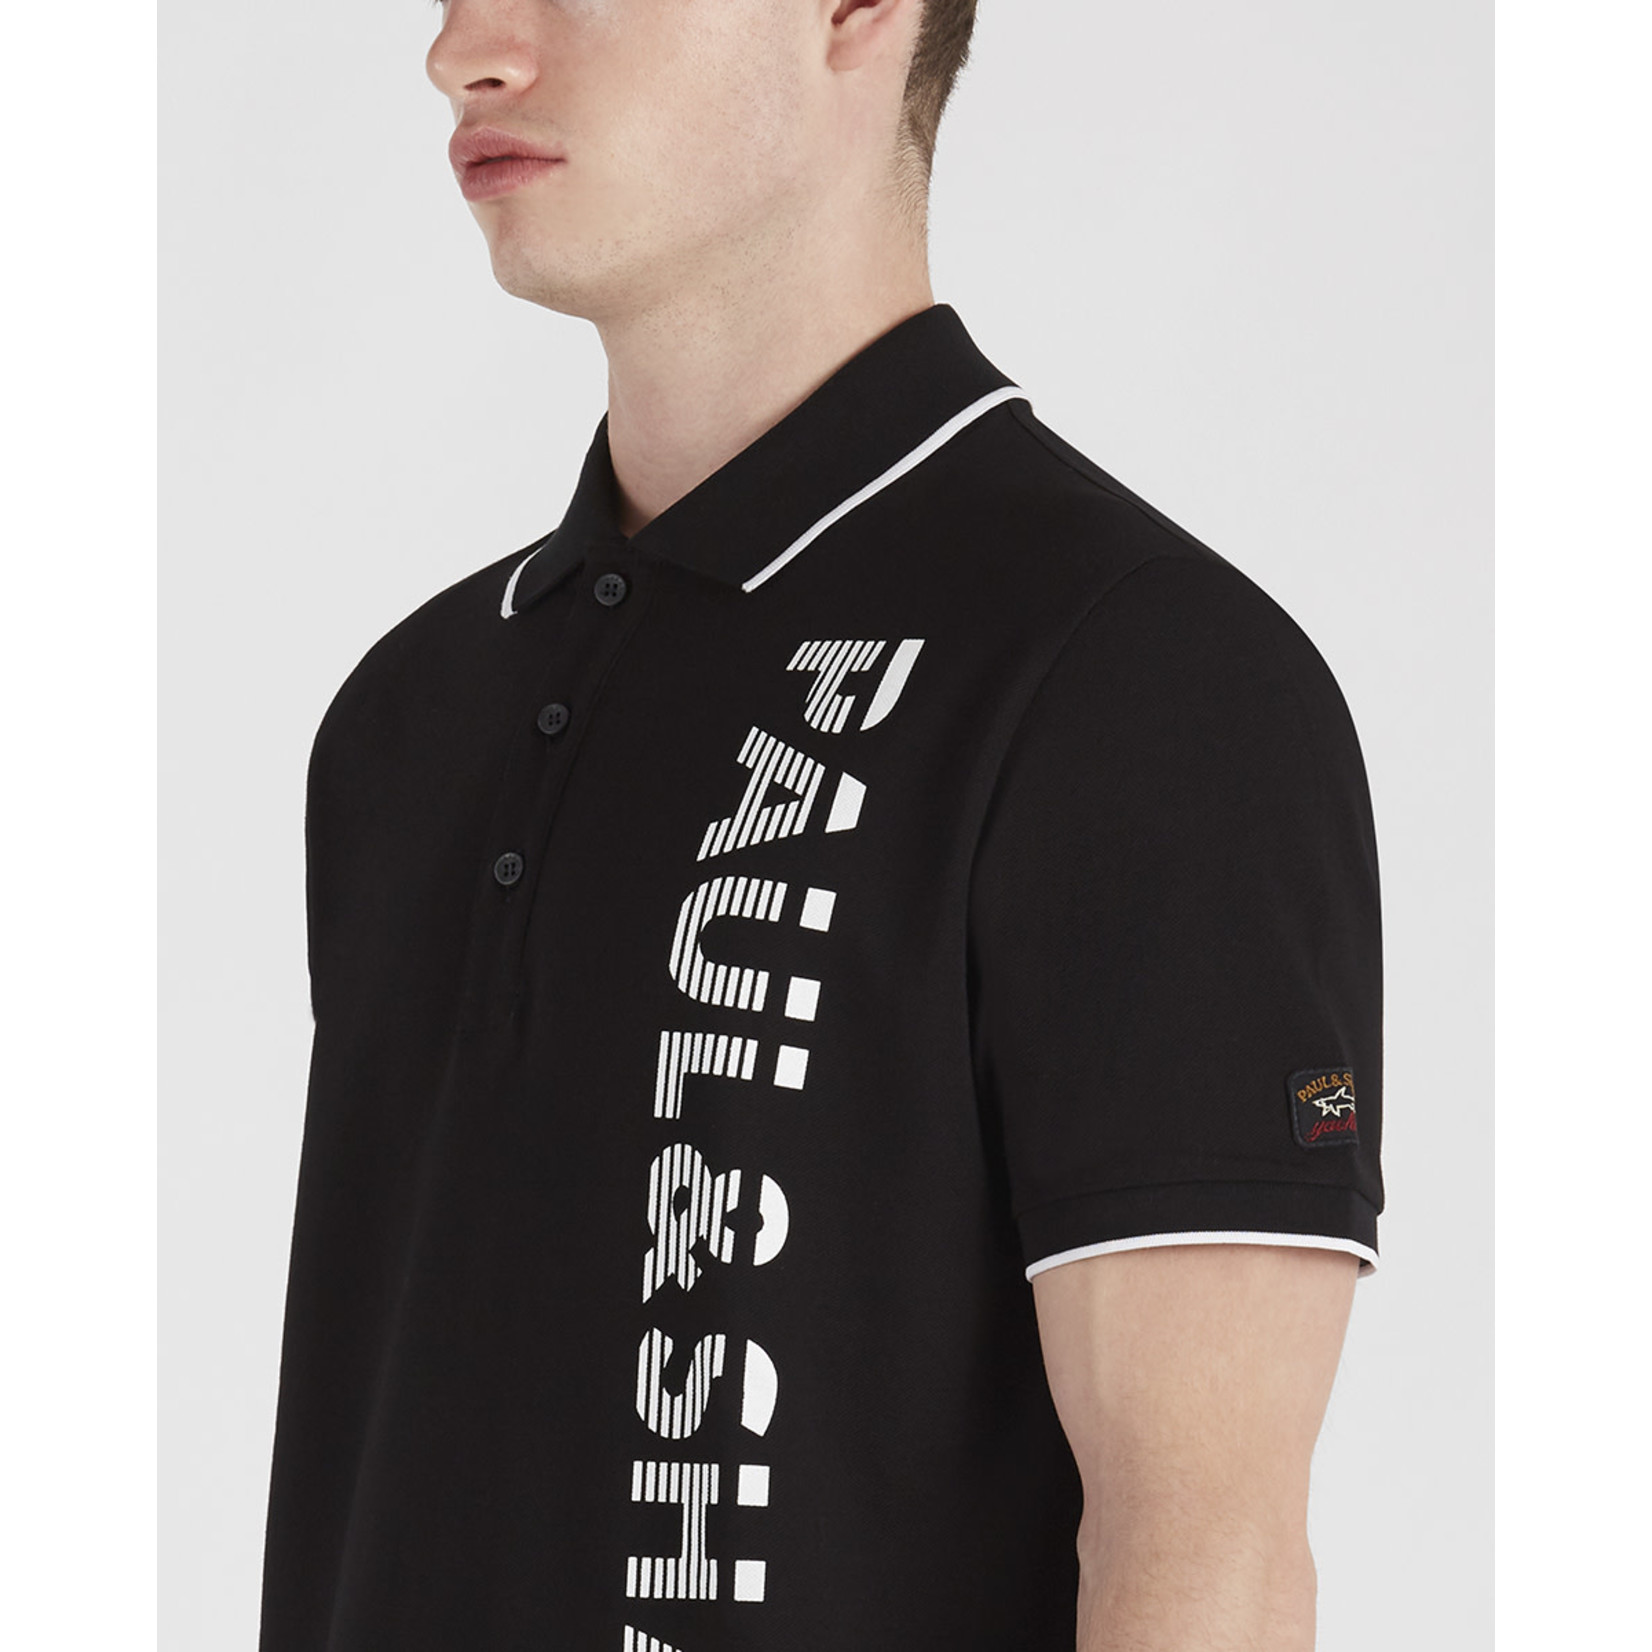 Paul & Shark polo korte mouw zwart